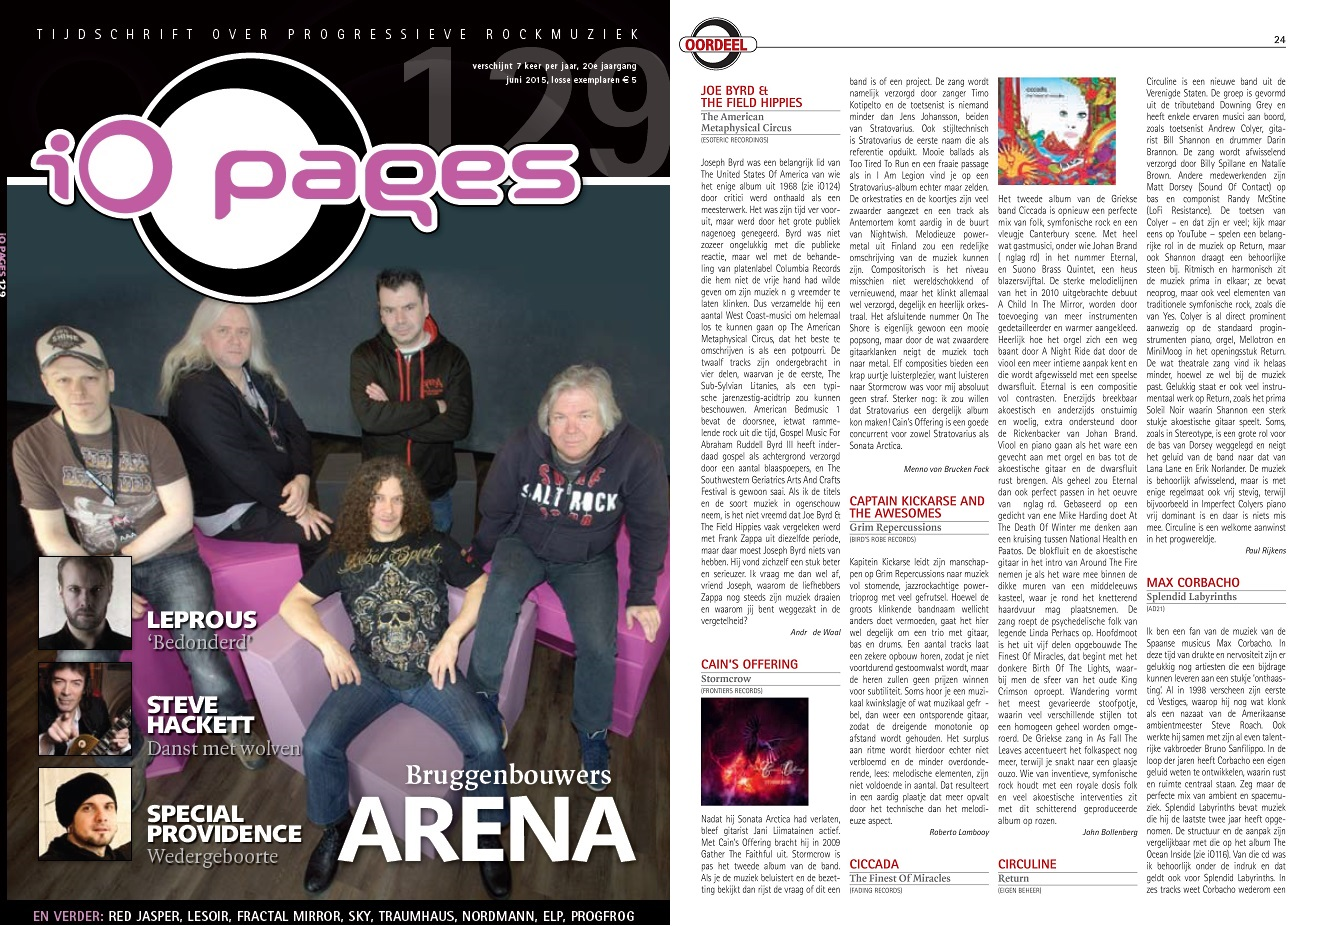 iO Pages (Netherlands) Features Return Review | Circuline